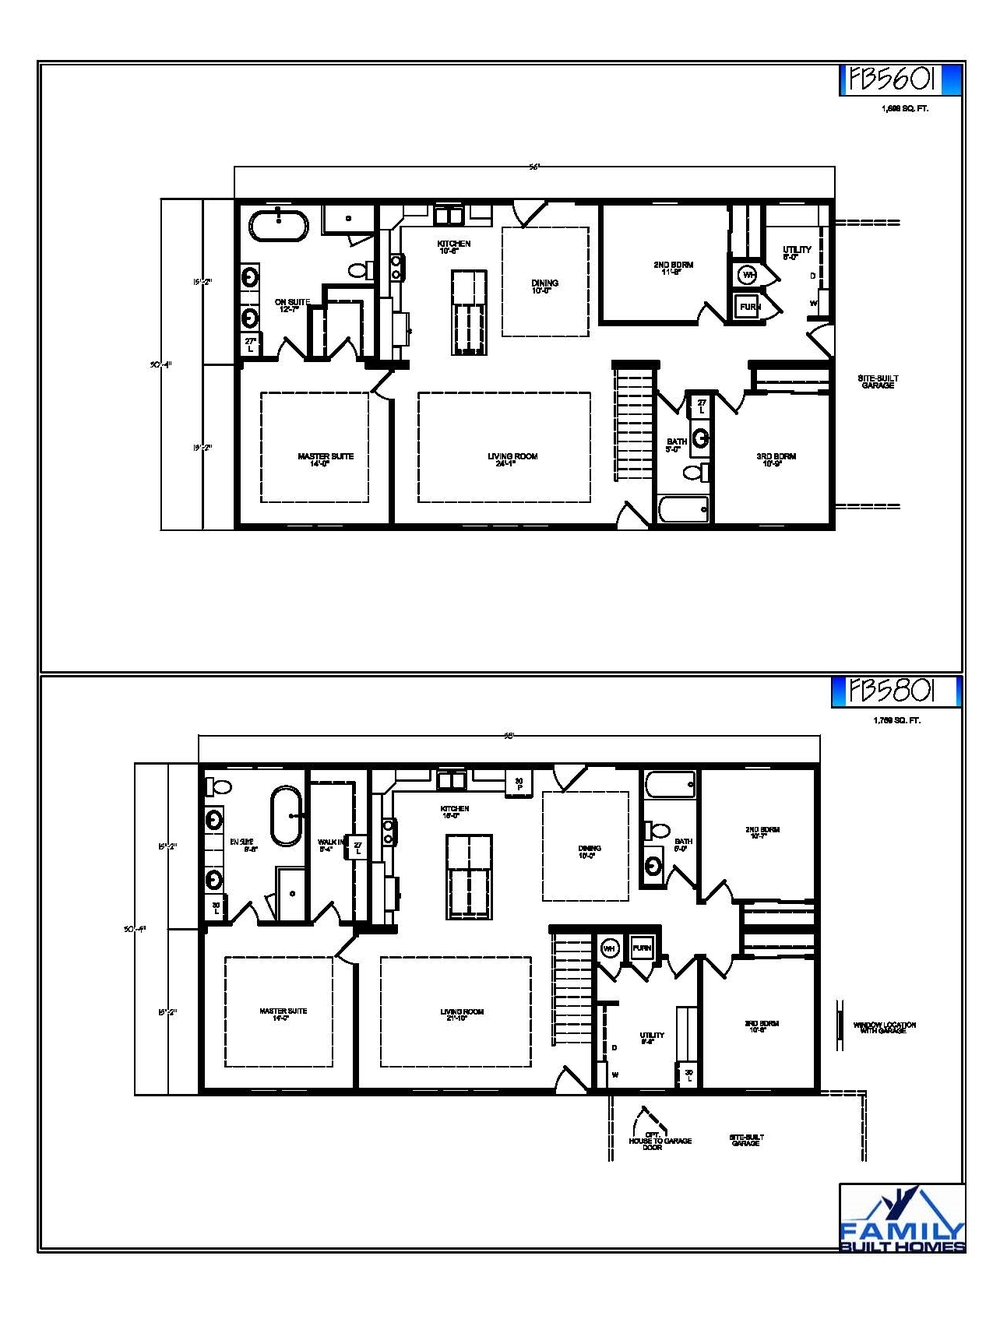 Floor plan collection sheets Model 52s.jpg